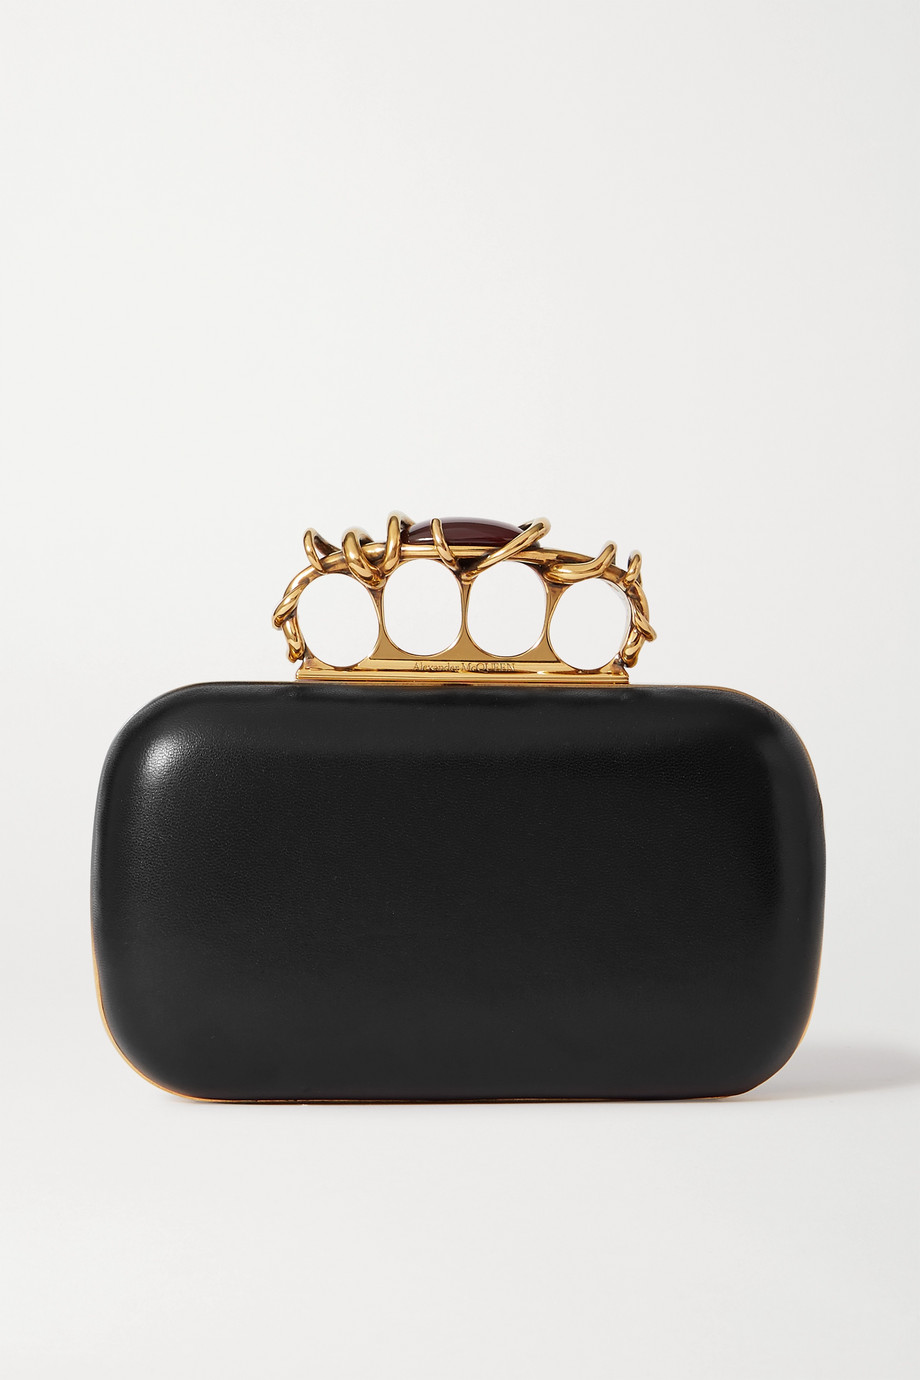 Alexander McQueen Four Ring embellished leather clutch